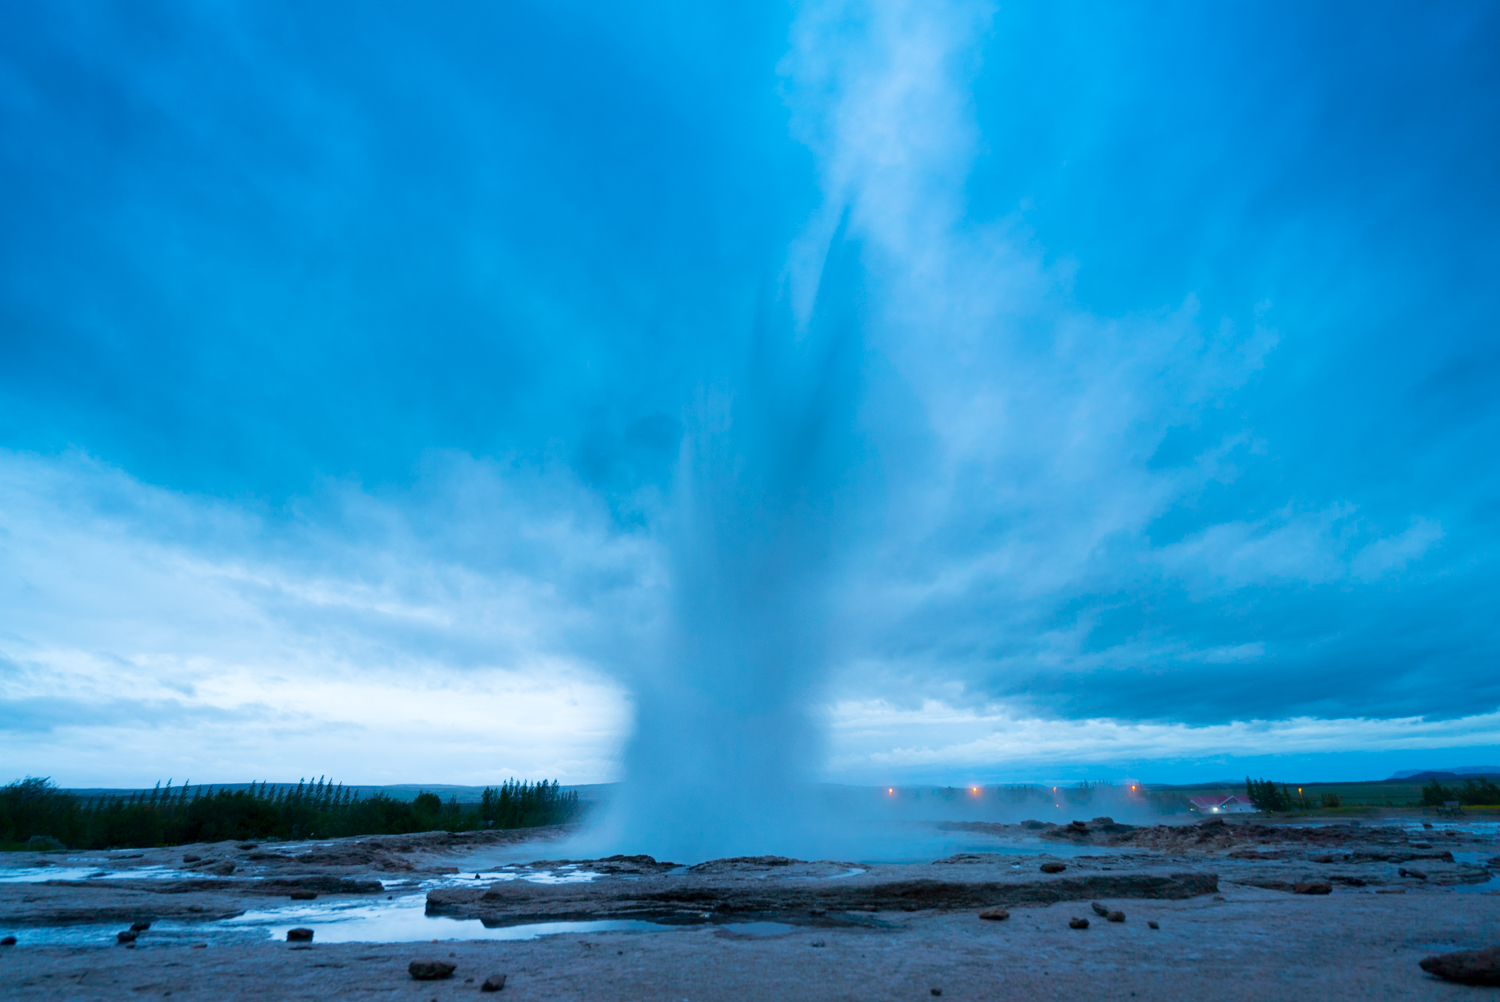 We went to check out Geysir, which is what all other geysers are named after.   Geysir doesn't erupt as often anymore, but Strokkur is another geyser right next to it that went off every couple of minutes.  It was really cool to see it in person.  By this time, it was 11pm and this was pretty much as dark as it got.